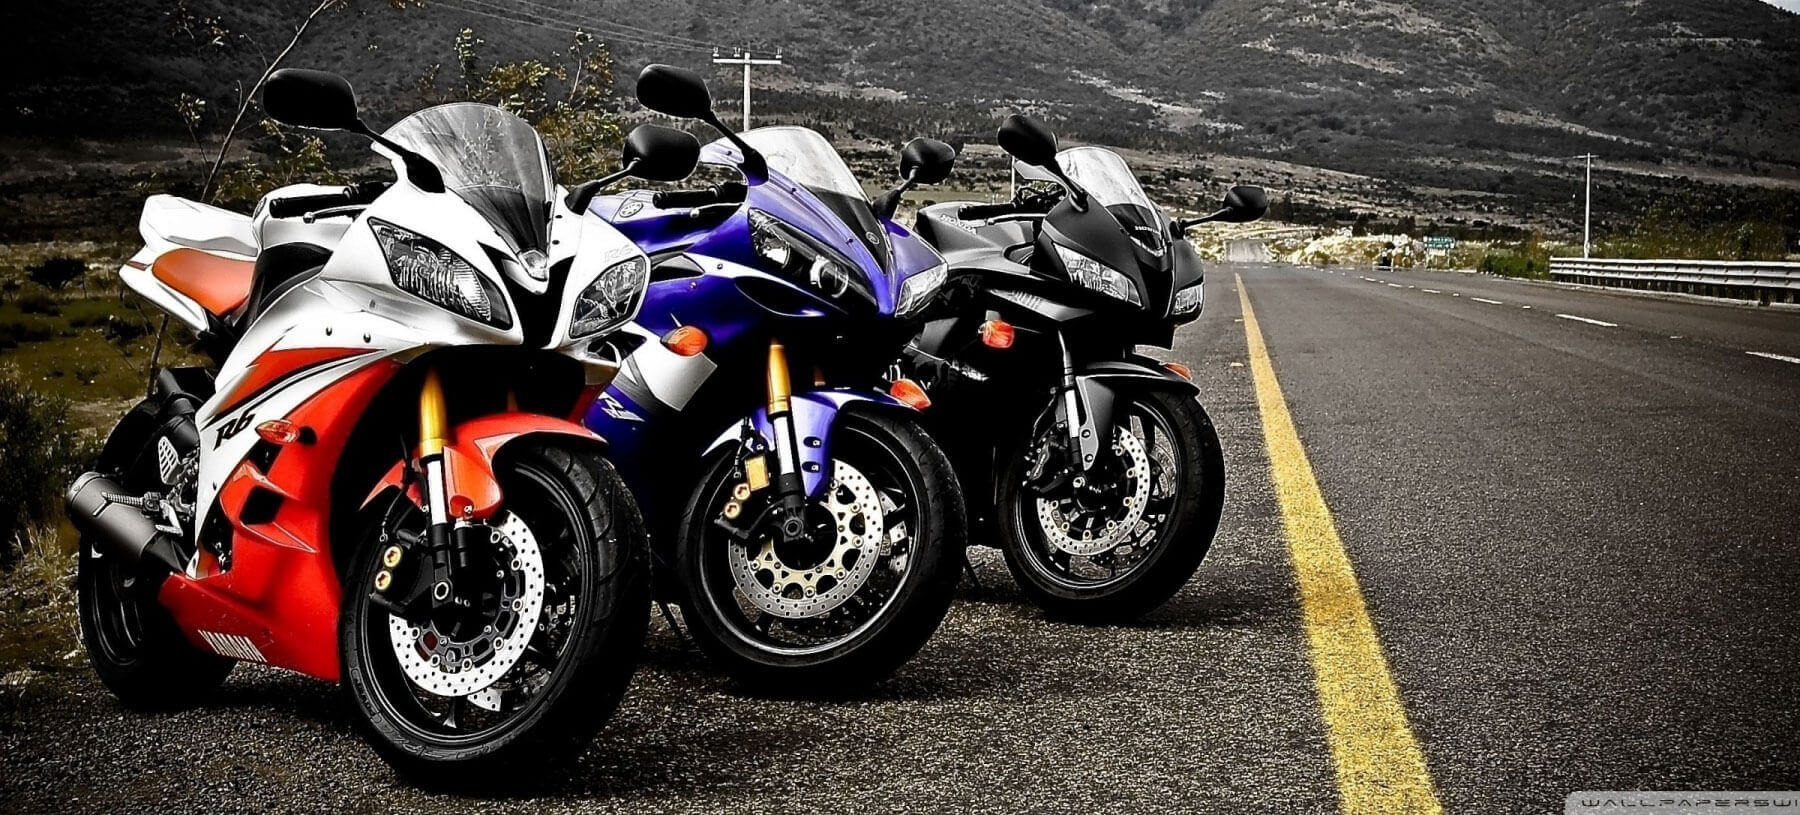 Are you looking for a motorcycles?